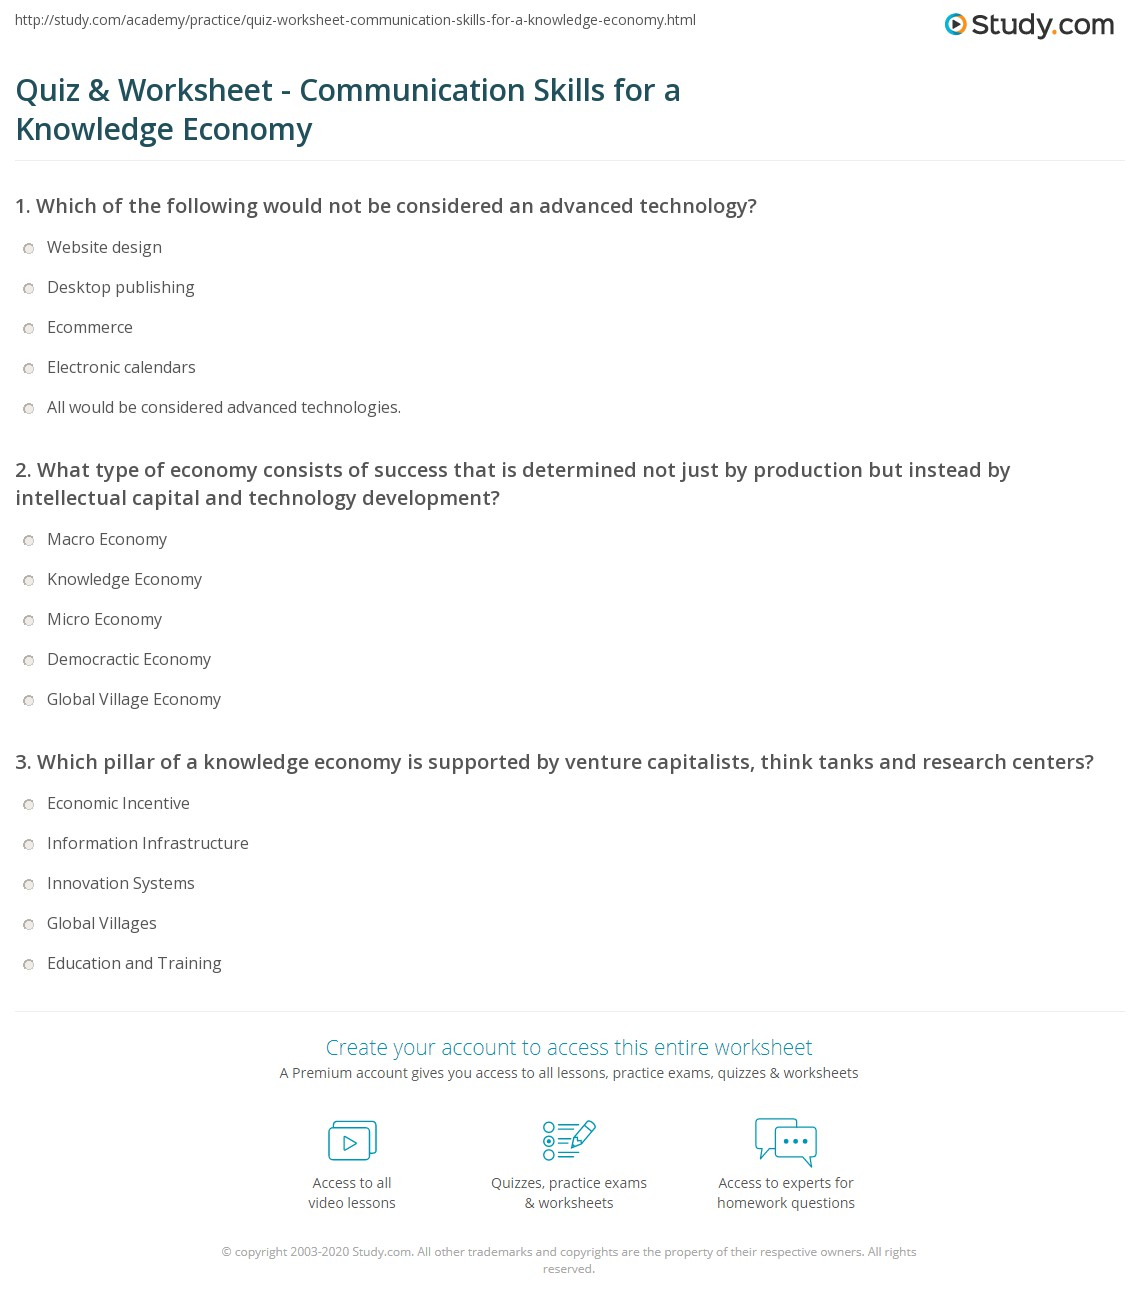 Quiz Worksheet Communication Skills For A Knowledge